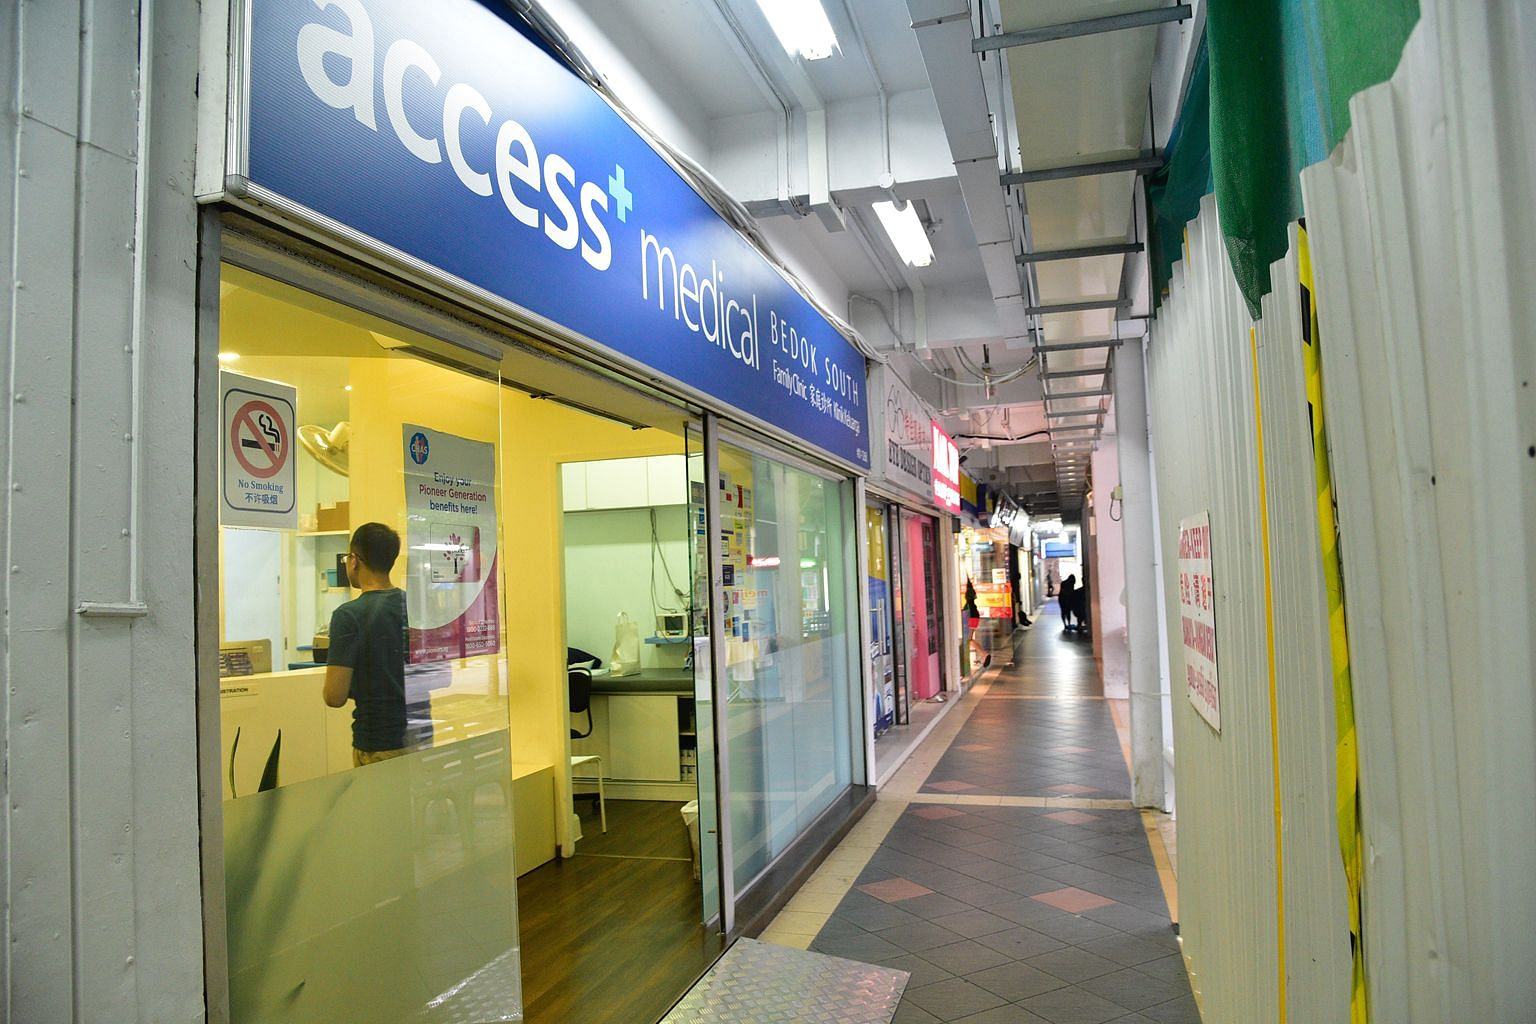 The Access Medical clinics under investigation will be suspended from the Community Health Assist Scheme from Oct 23.